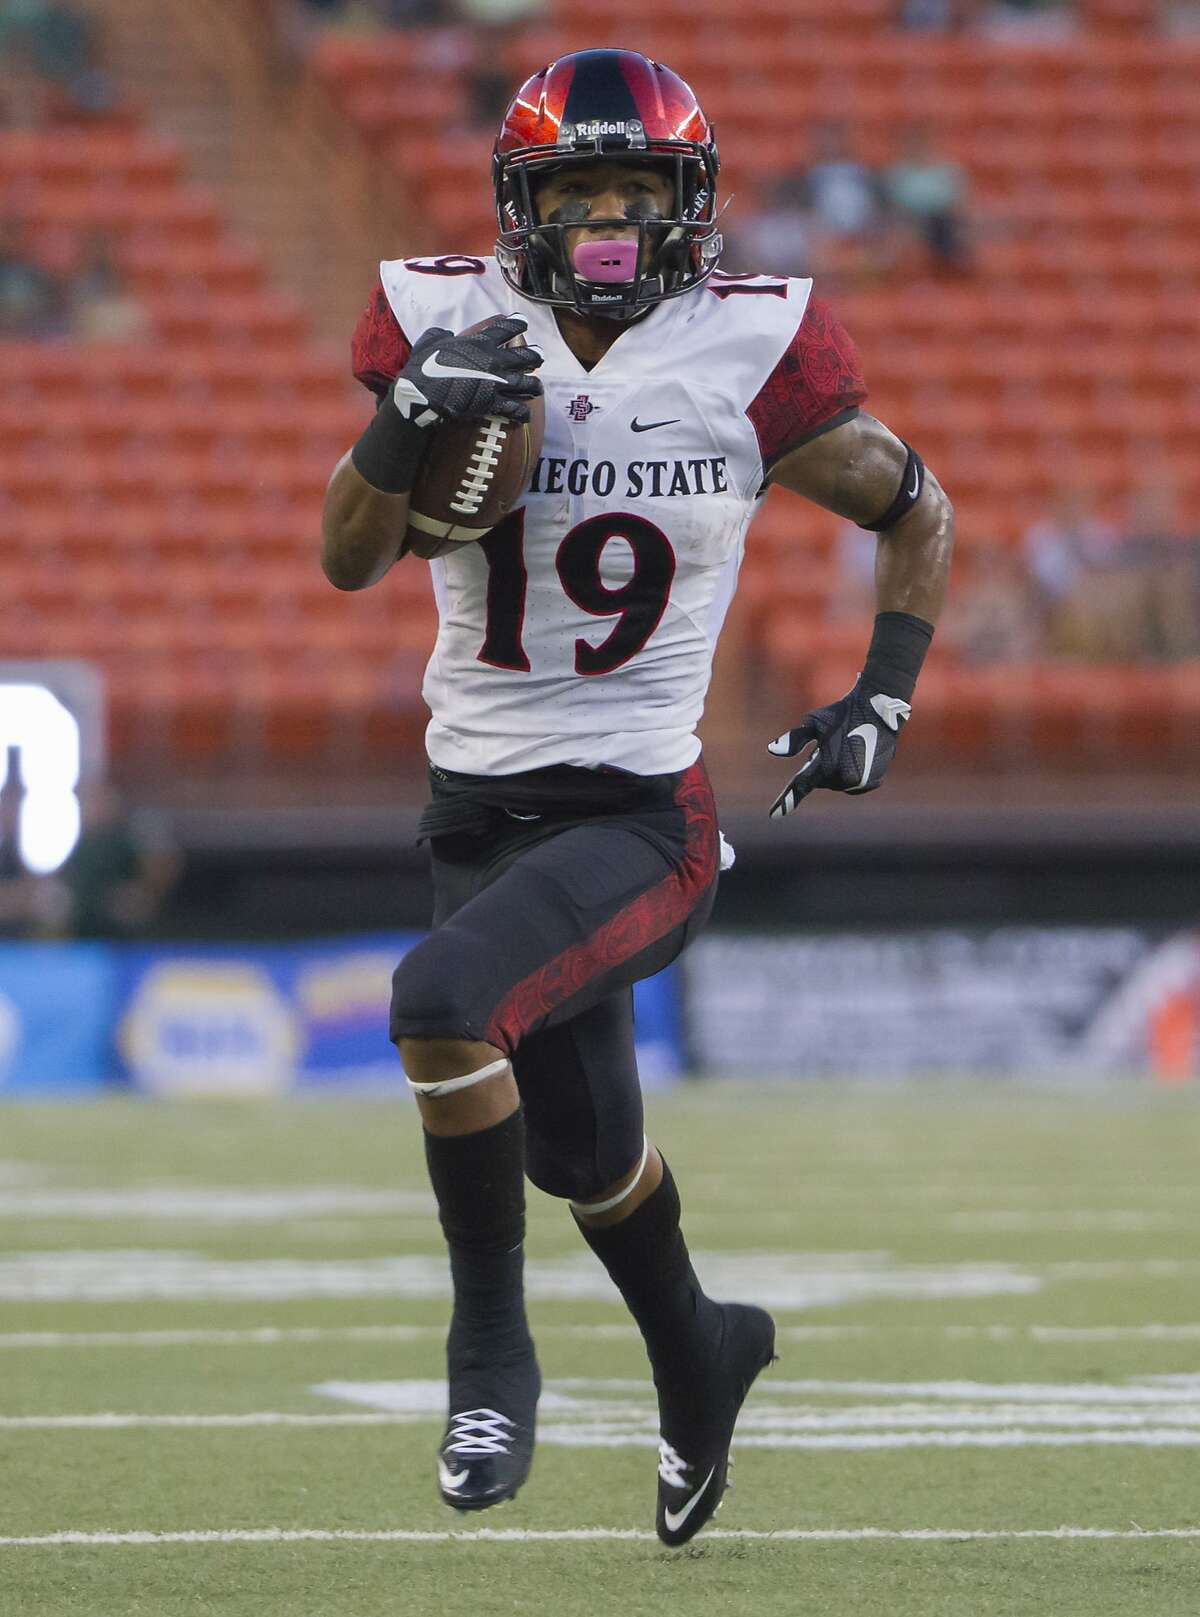 San Diego State running back Donnel Pumphrey (19) runs with the football in the first quarter of an NCAA college football game, Saturday, Oct. 10, 2015, in Honolulu. (AP Photo/Eugene Tanner)